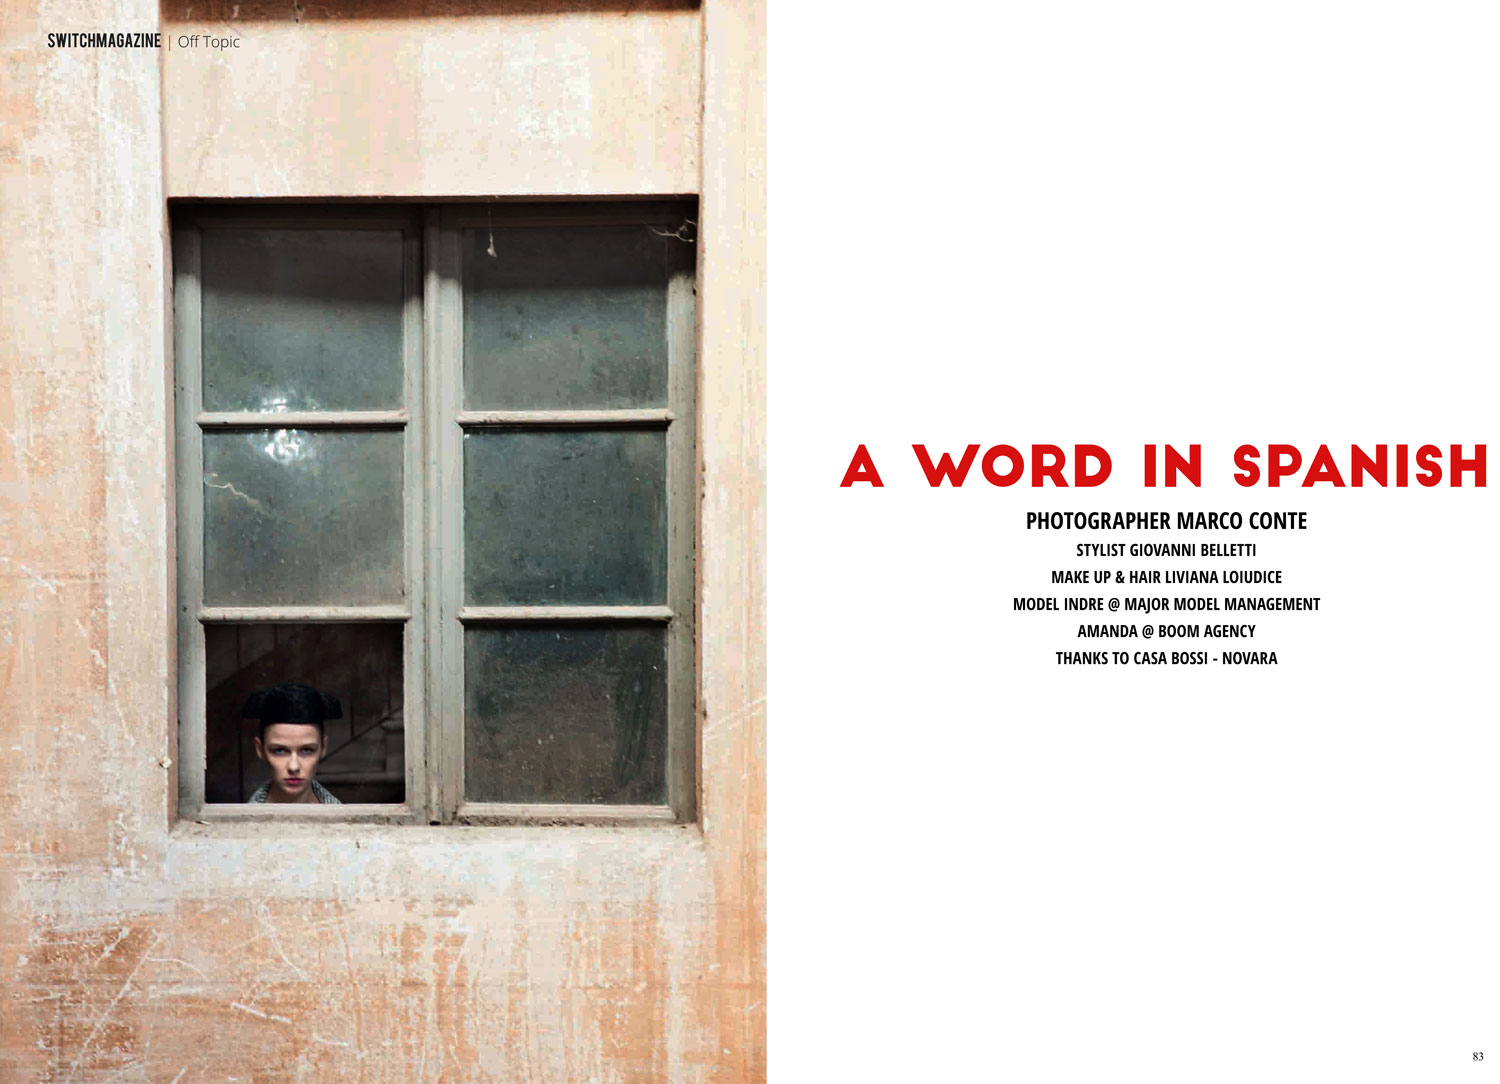 A WORLD IN SPANISH by Marco Conte